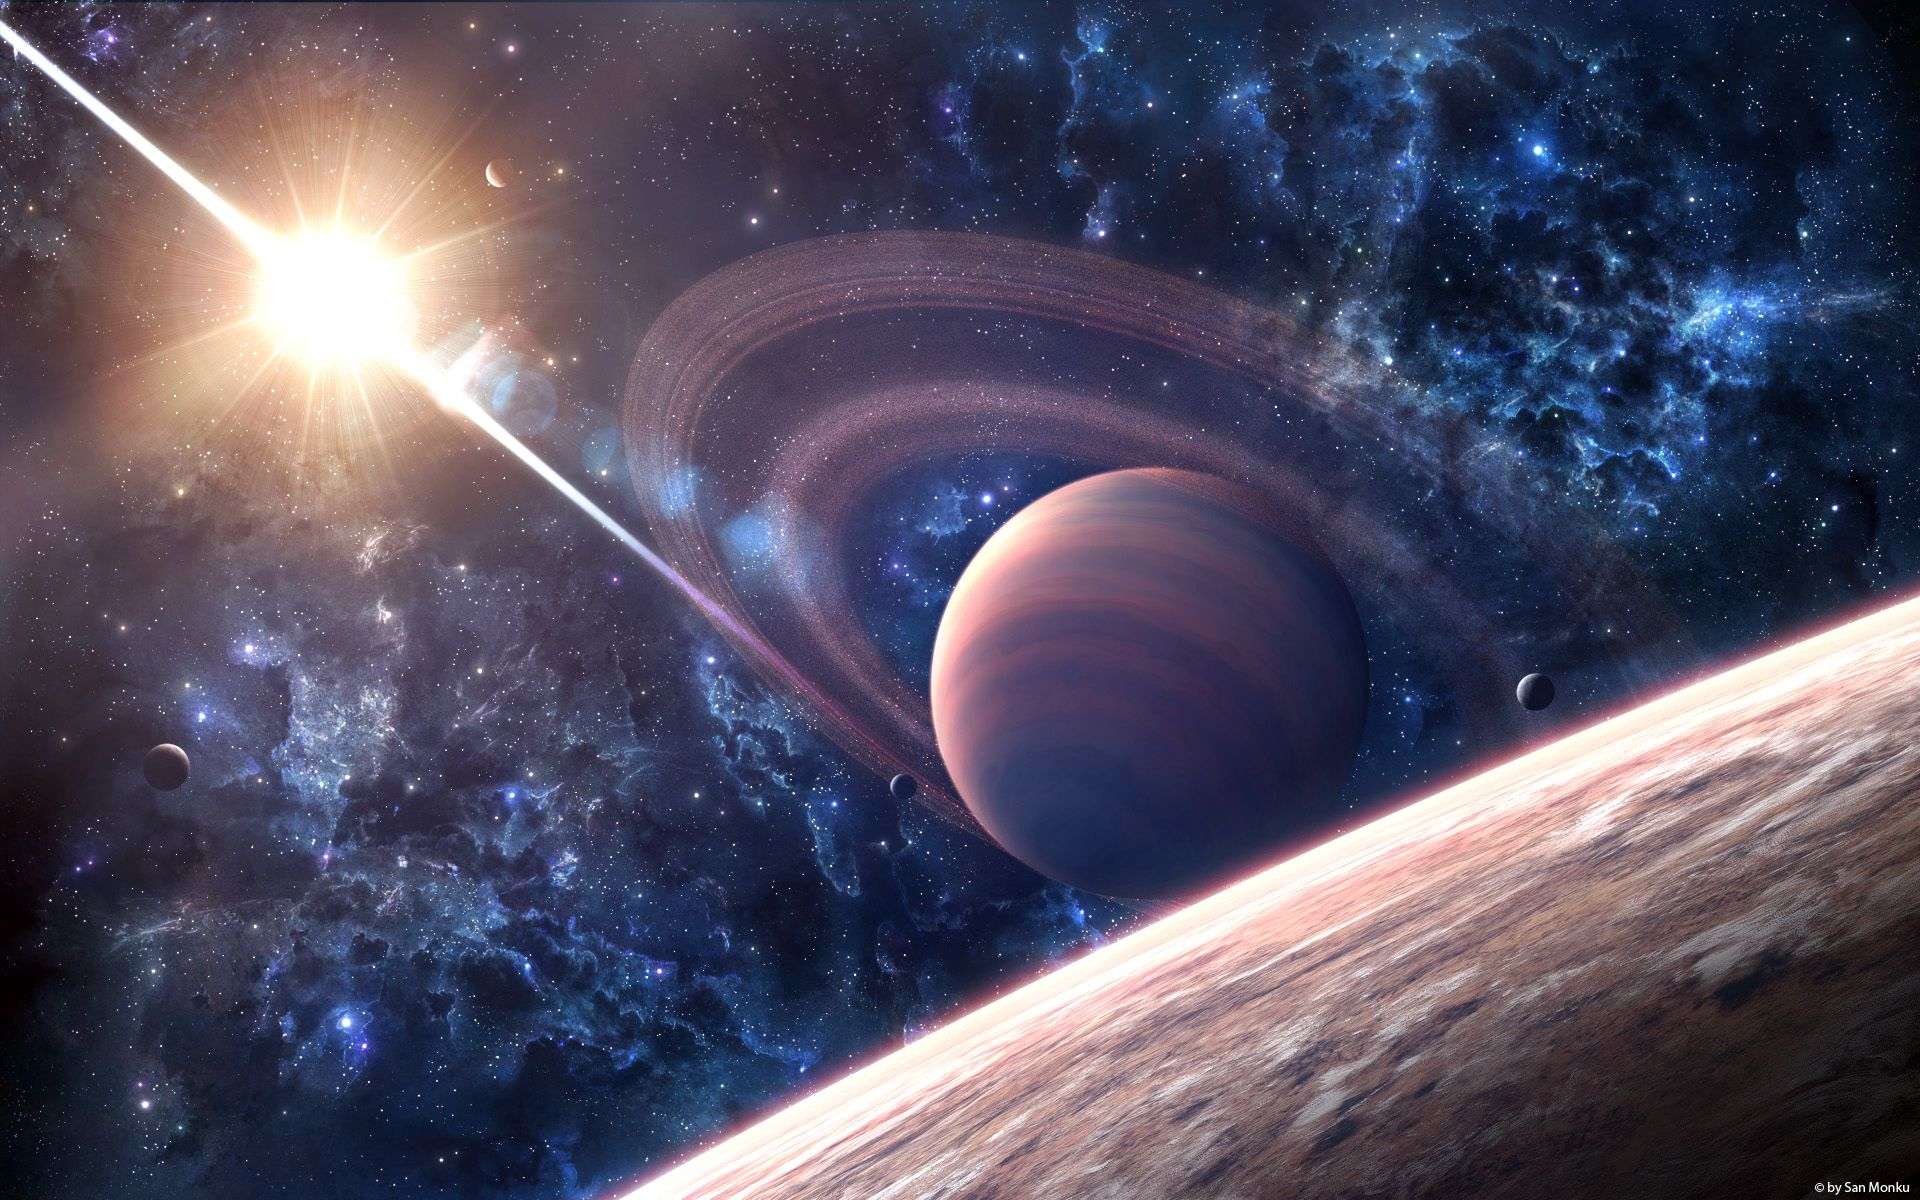 114893 download wallpaper Universe, Galaxy, Saturn, Planet screensavers and pictures for free